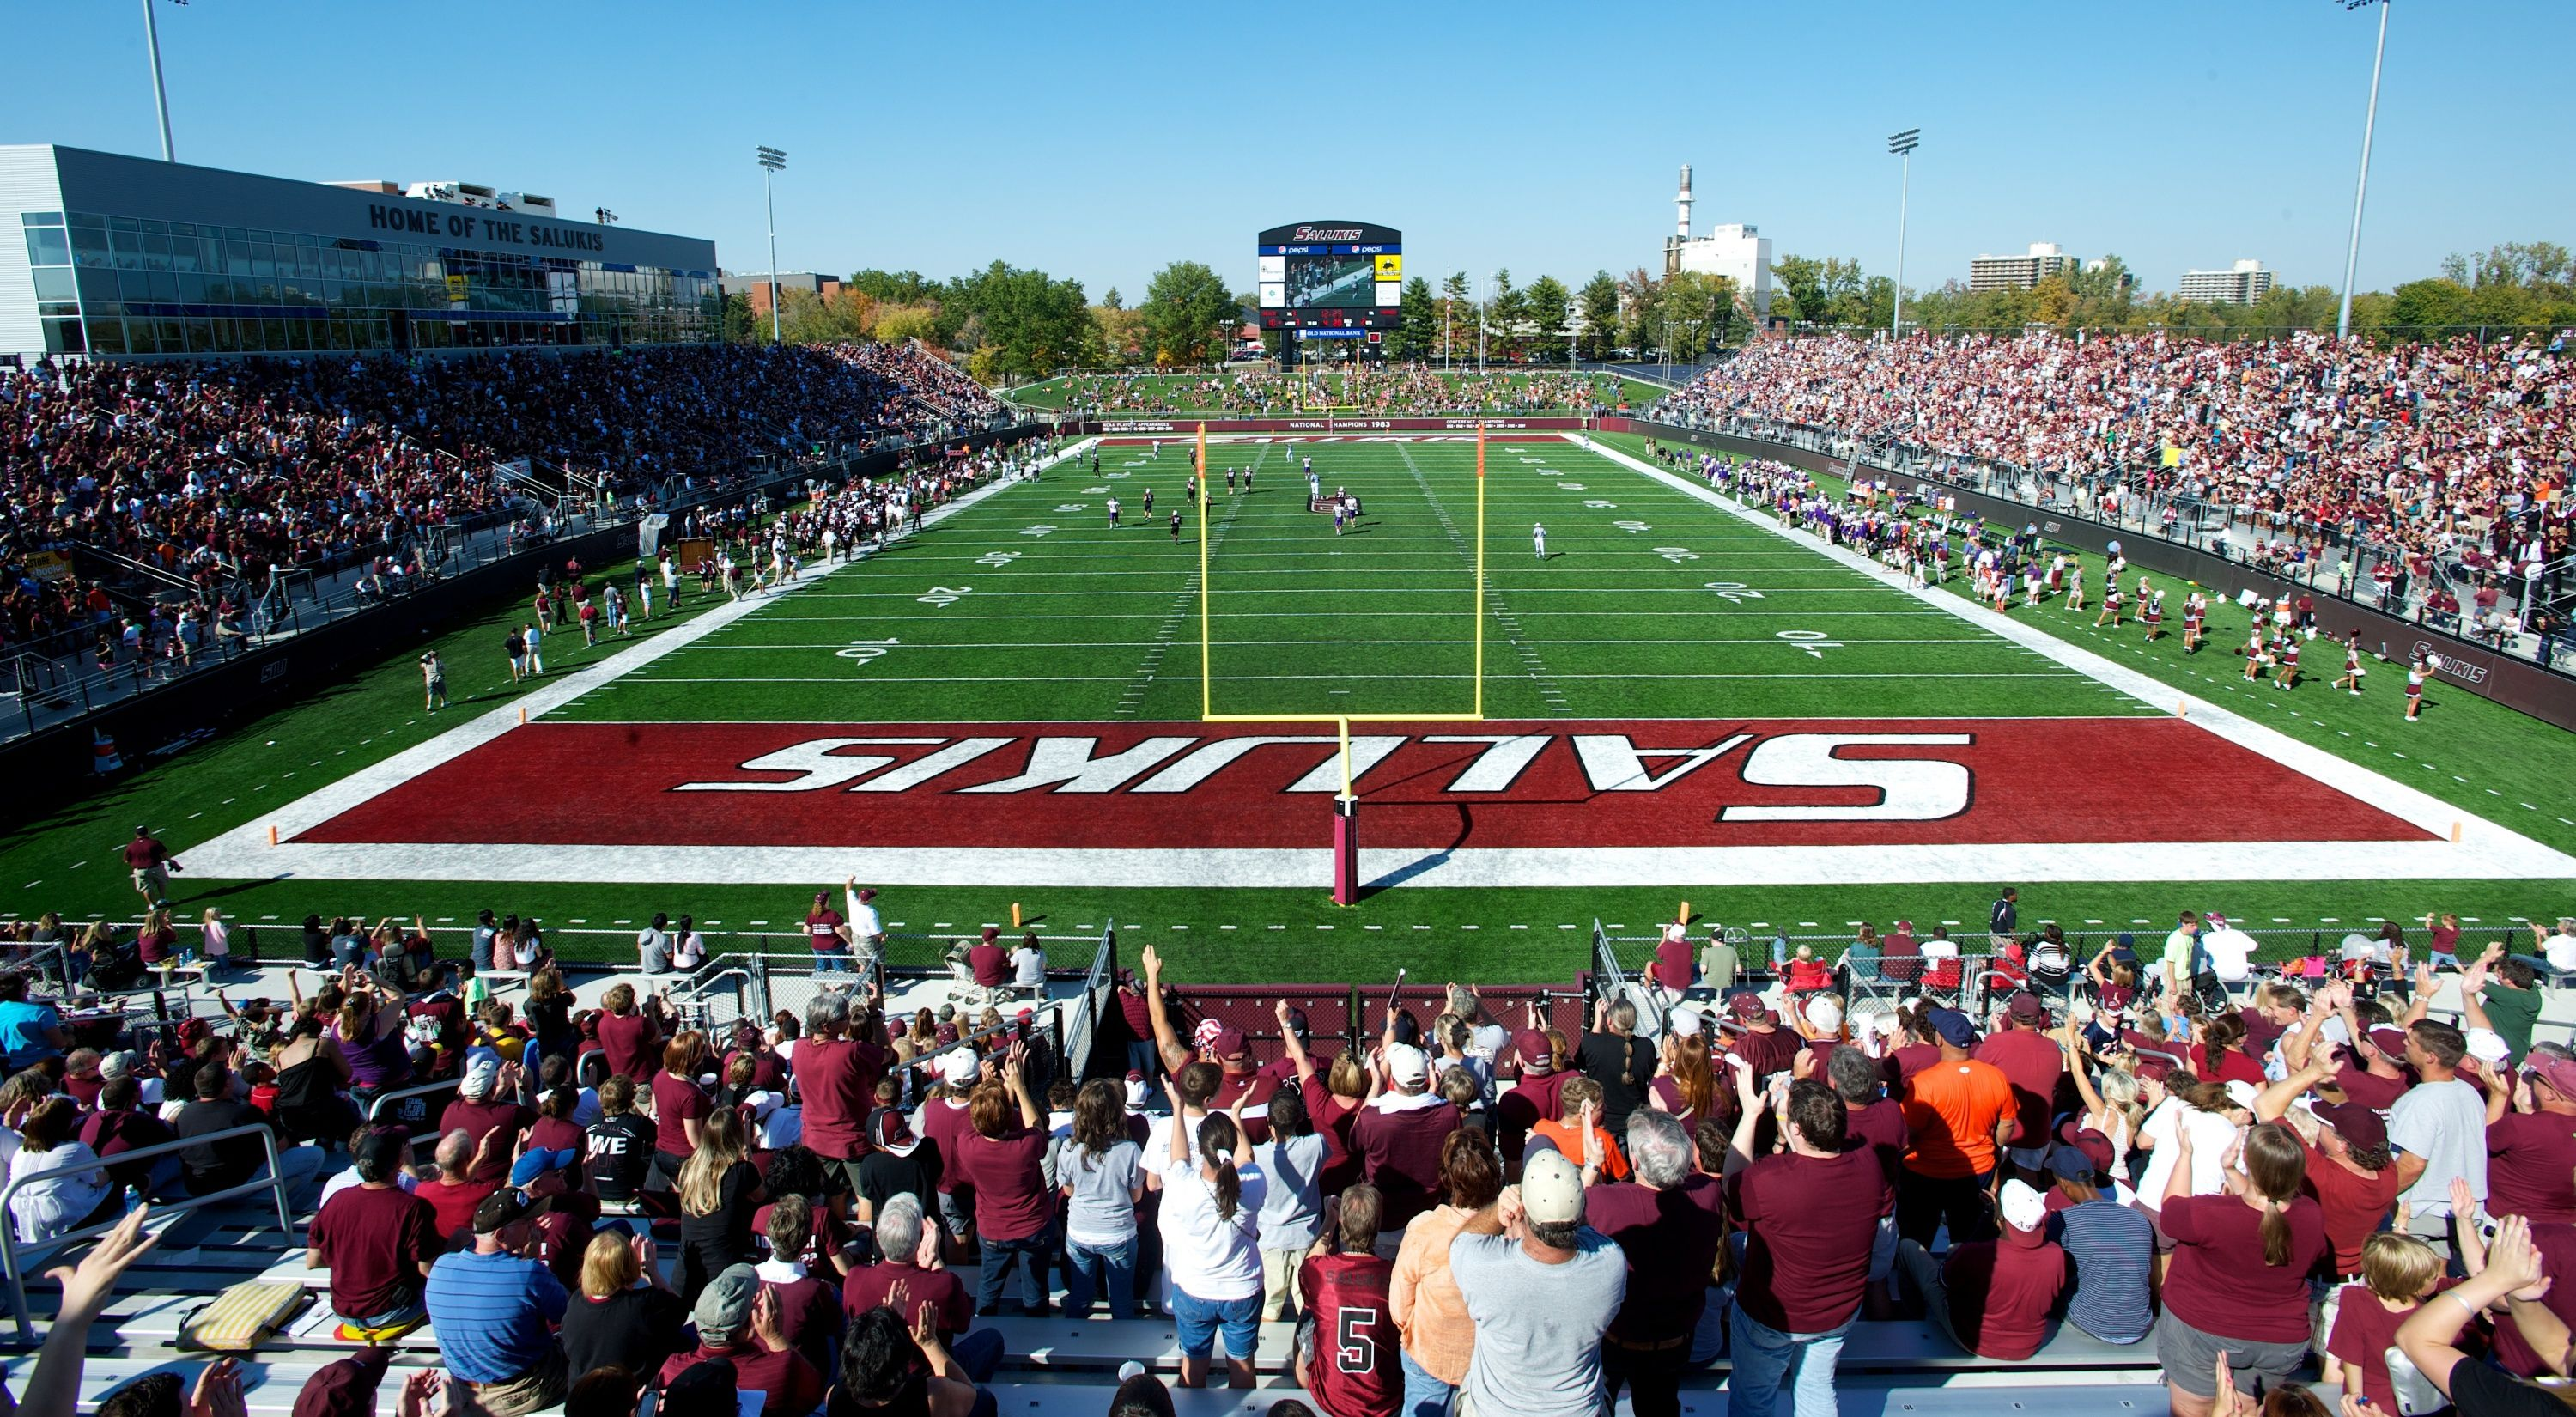 Southern Illinois University Official Athletic Site Facilities Illinois Football Southern Illinois Salukis Southern Illinois University